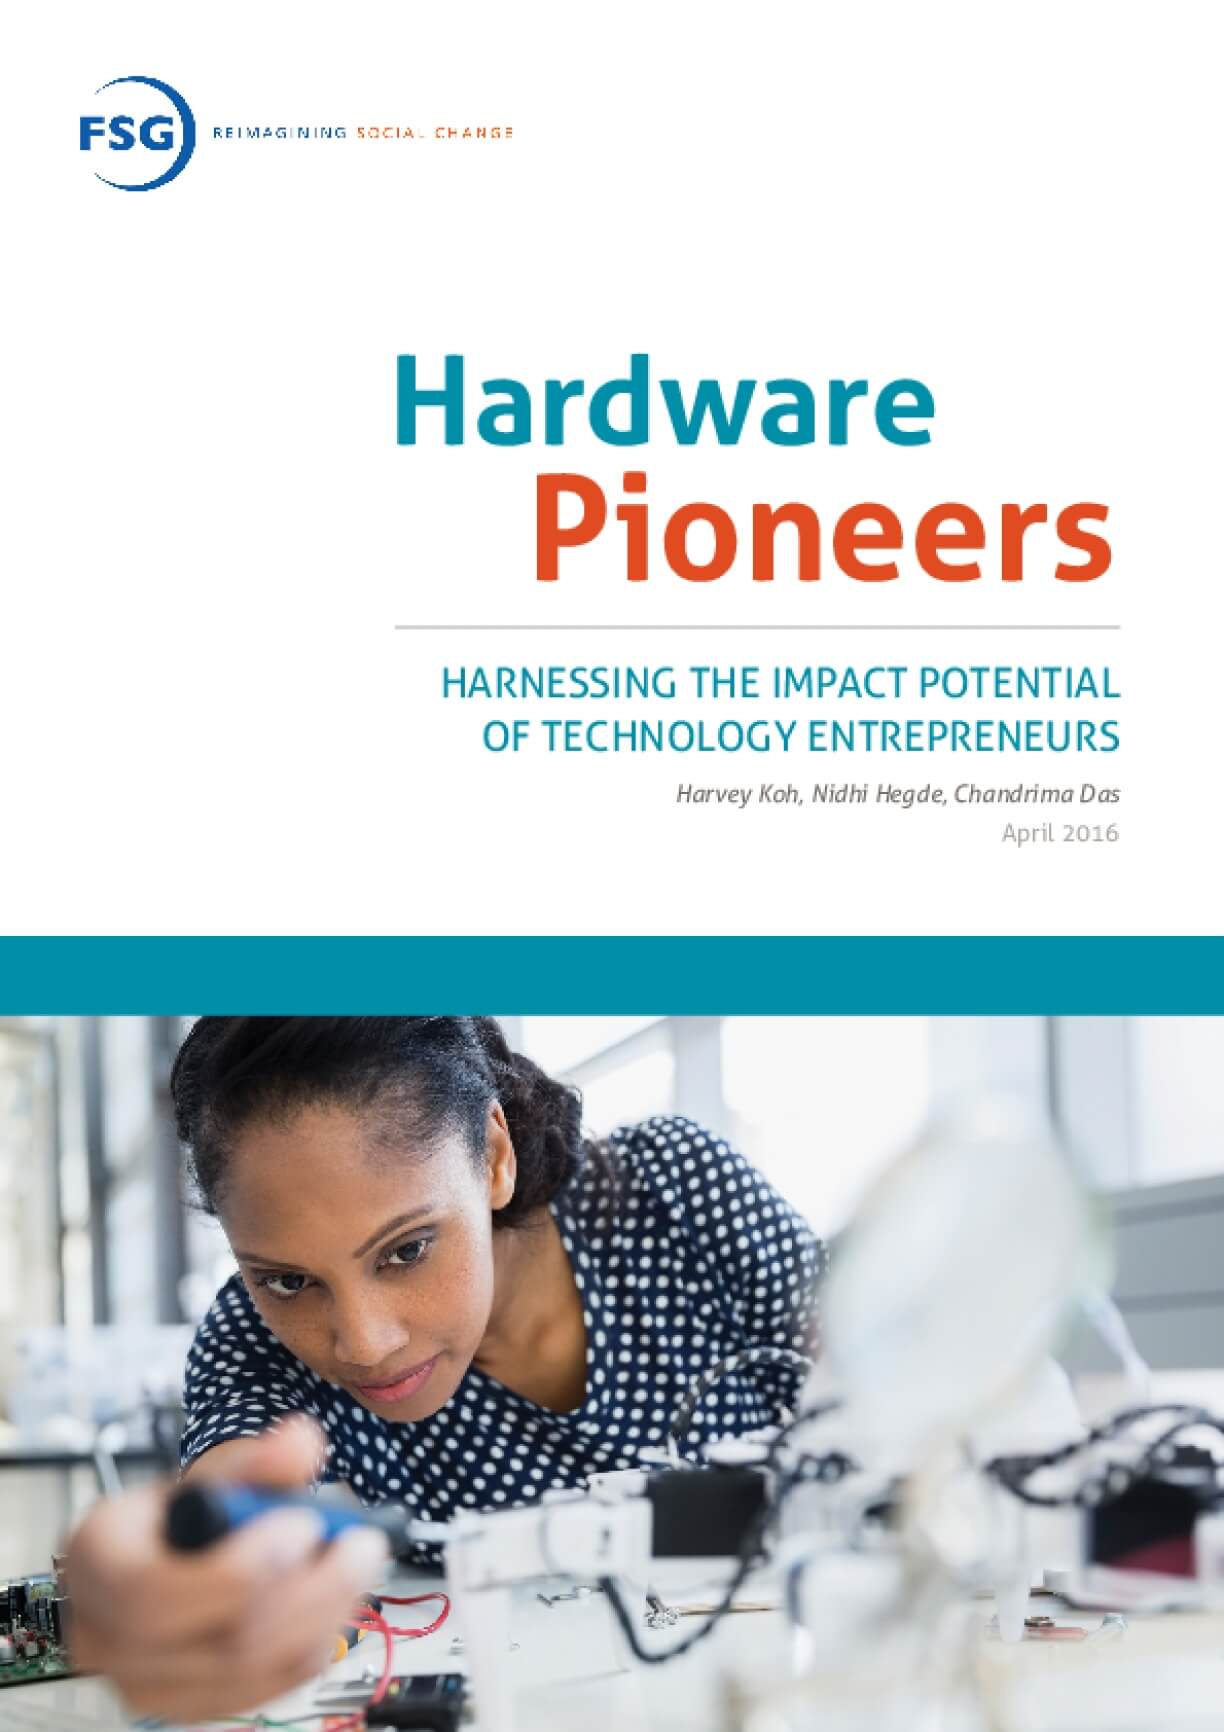 Hardware Pioneers: Harnessing the Impact Potential of Technology Entrepreneurs